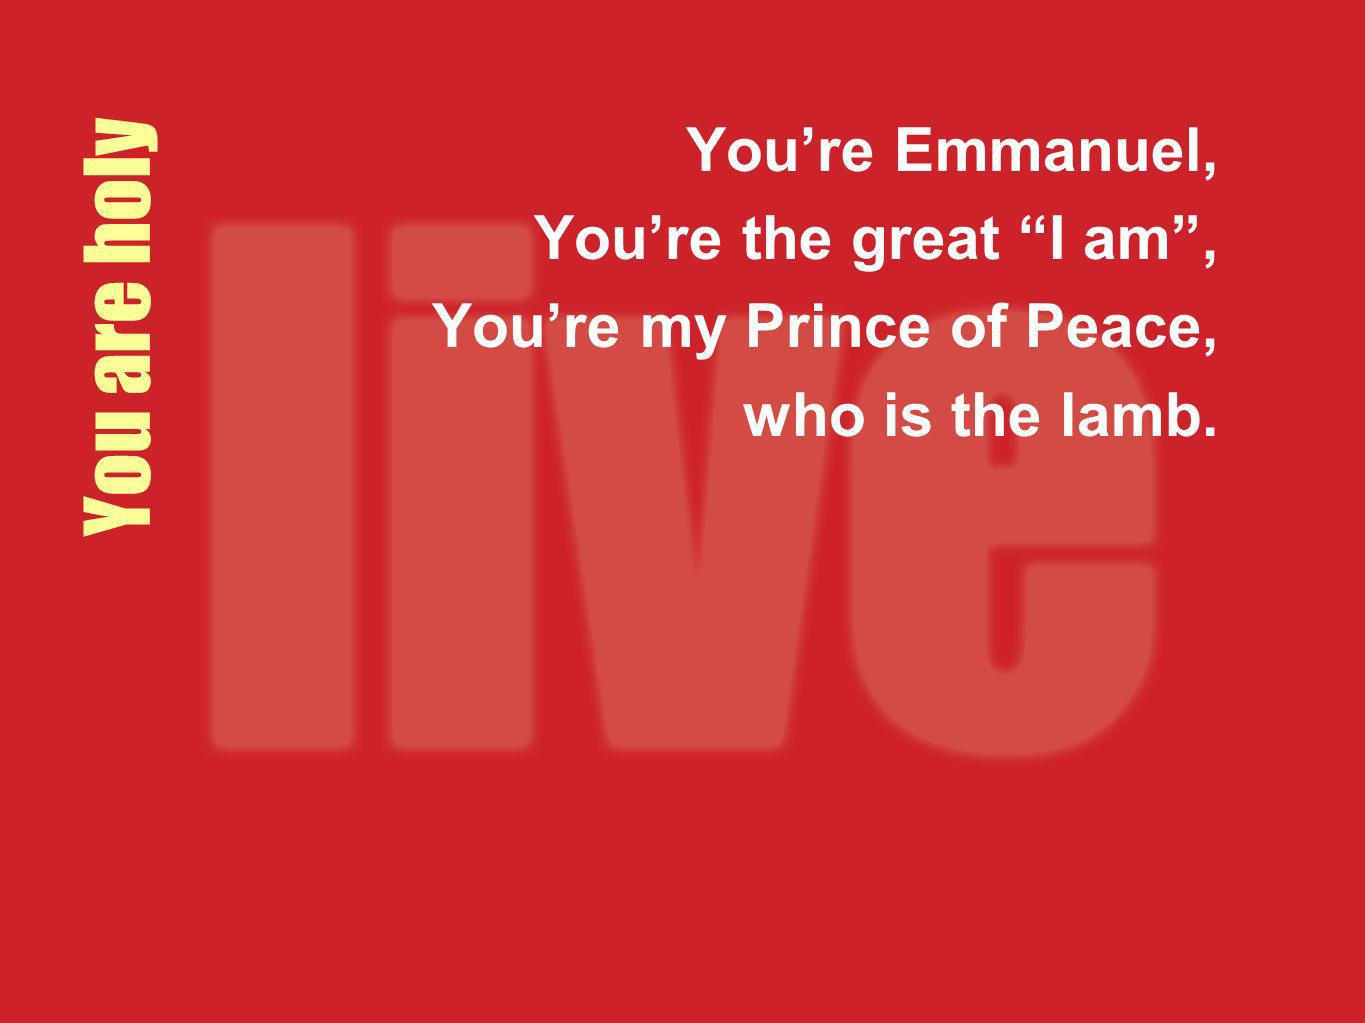 You are holy Youre Emmanuel, Youre the great I am, Youre my Prince of Peace, who is the lamb.